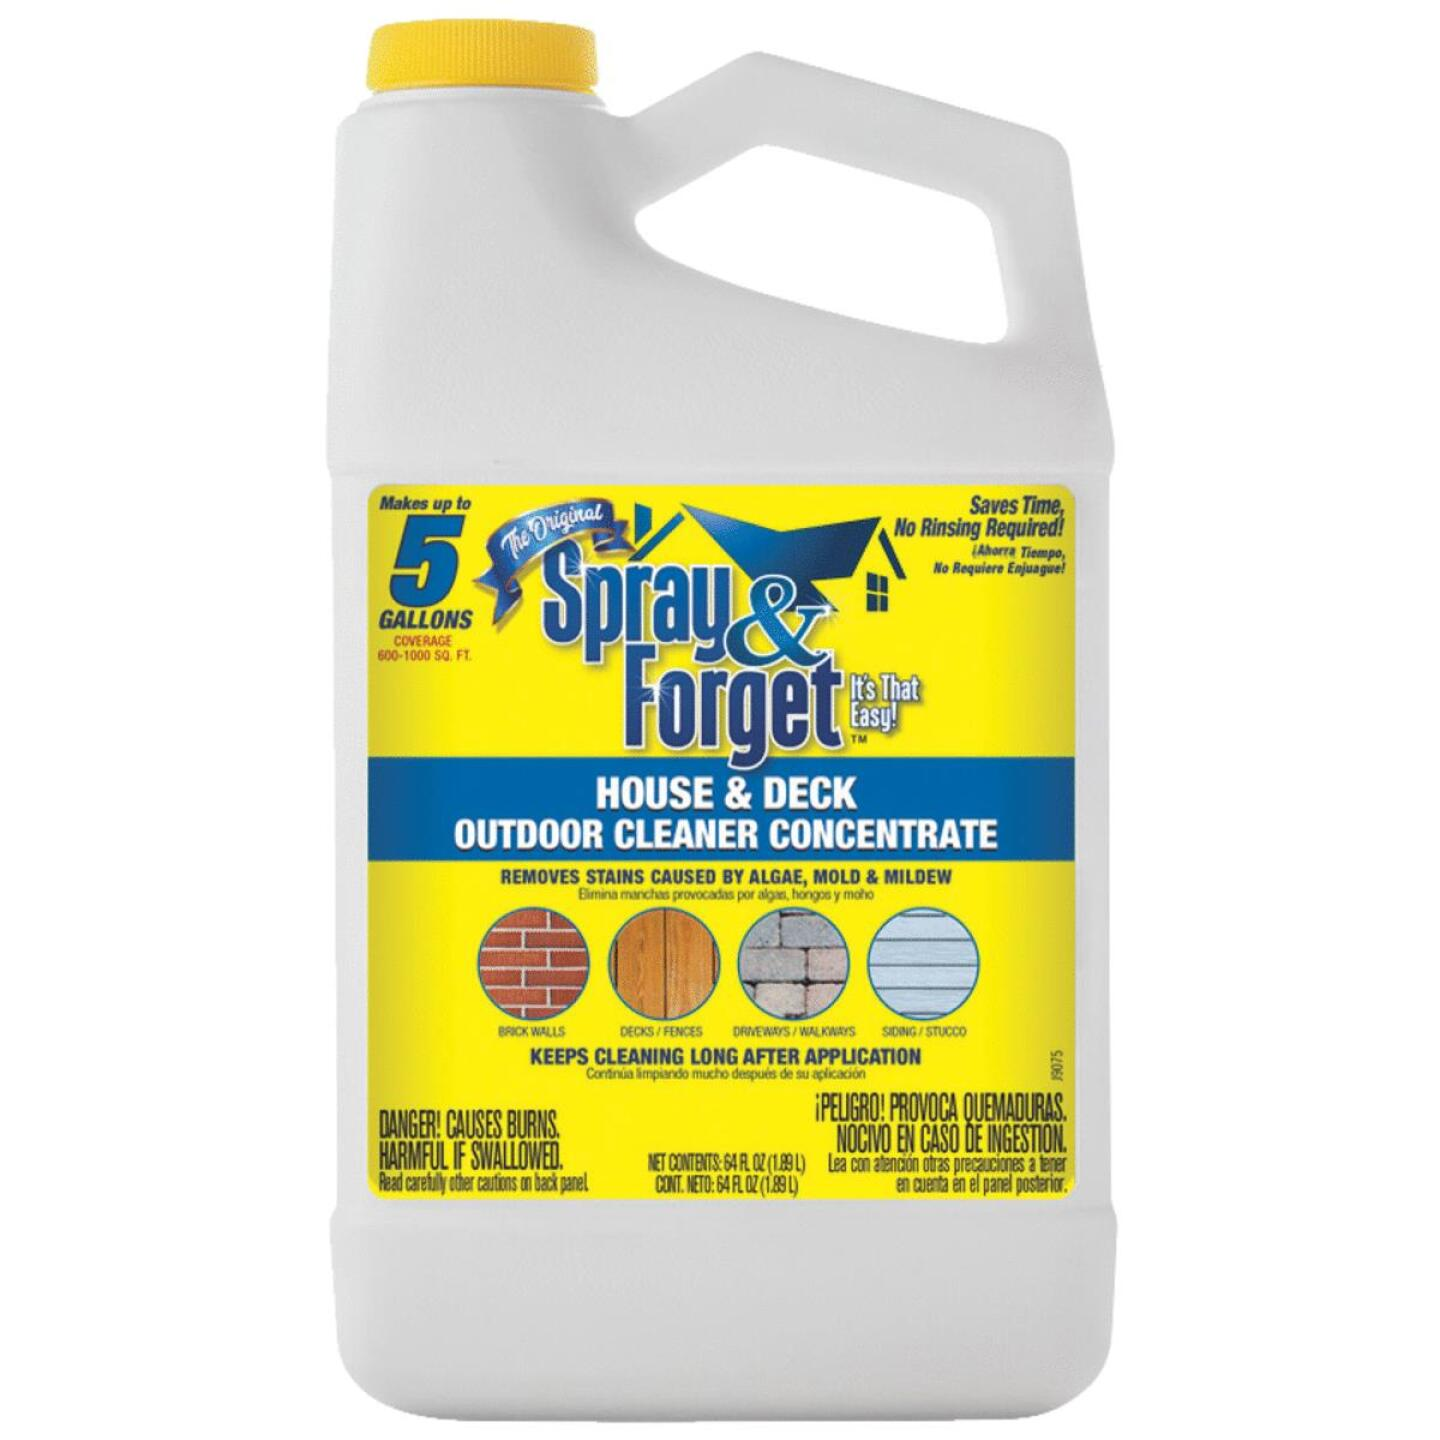 Spray & Forget 64 Oz. Liquid Concentrate House & Deck Outdoor Cleaner Mold Stain Remover Image 1